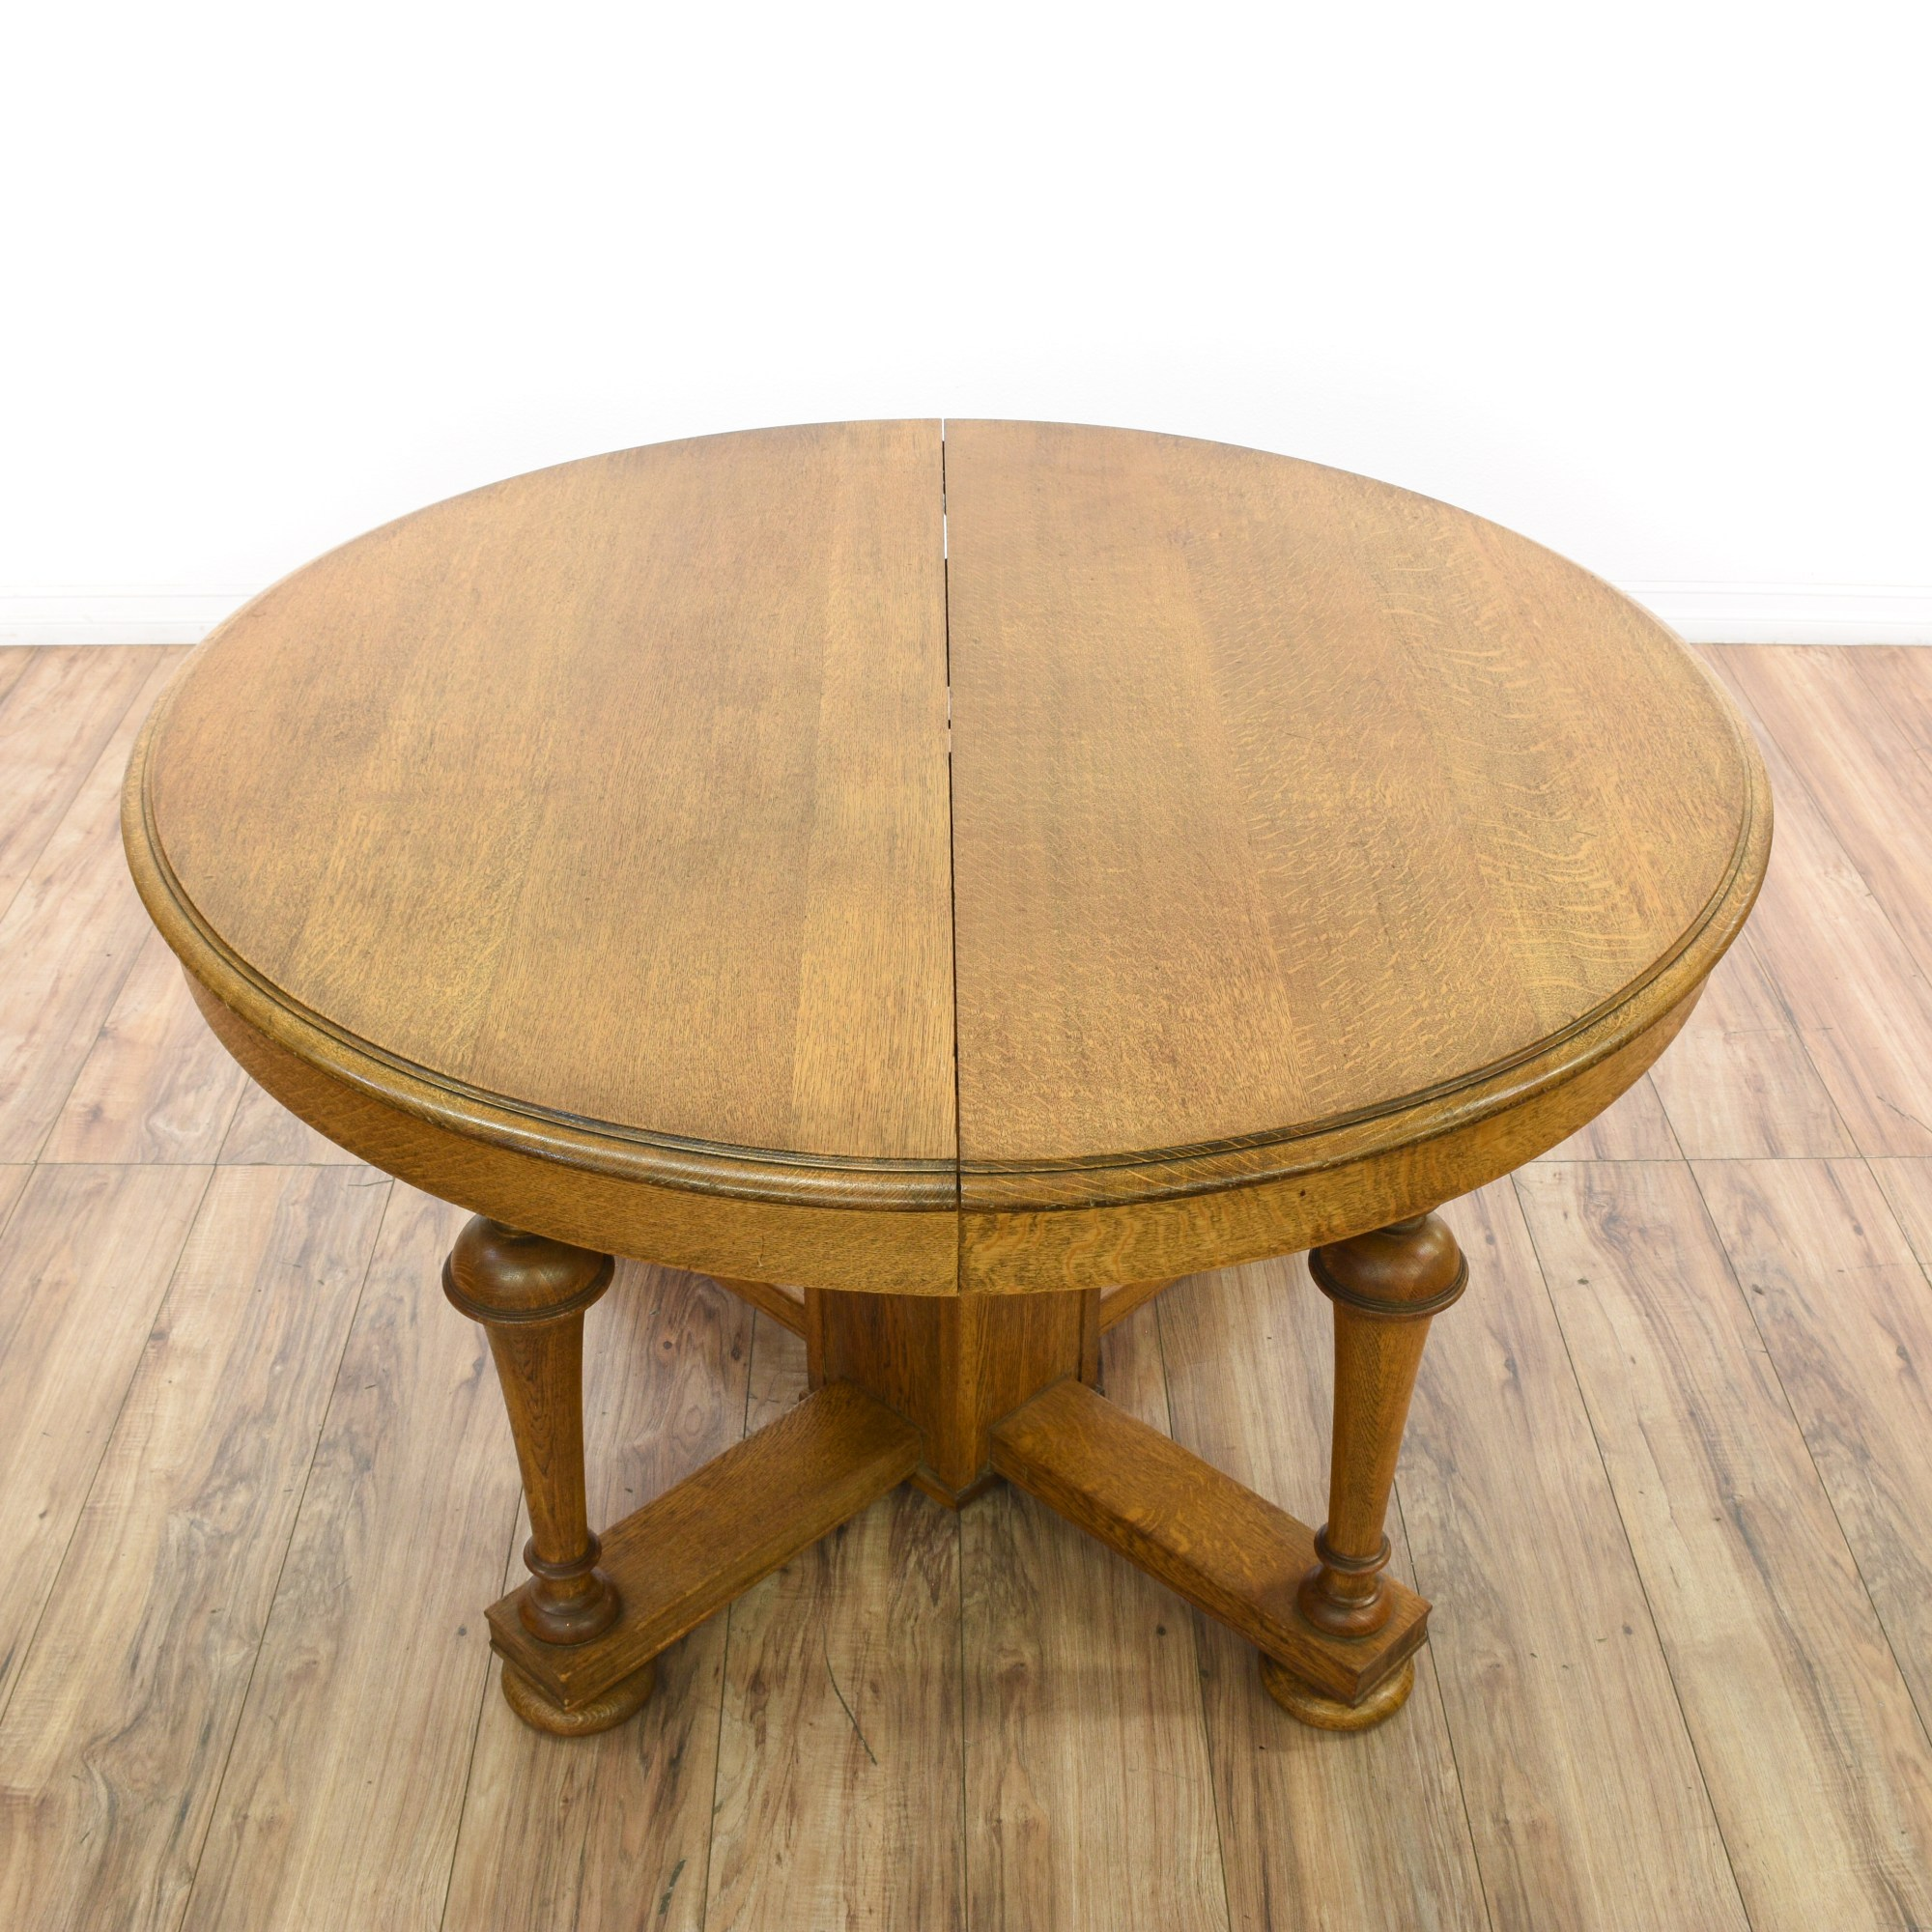 Circle Round Farmhouse Dining Table Round Turned Quarter Sawn Oak Dining Table Loveseat